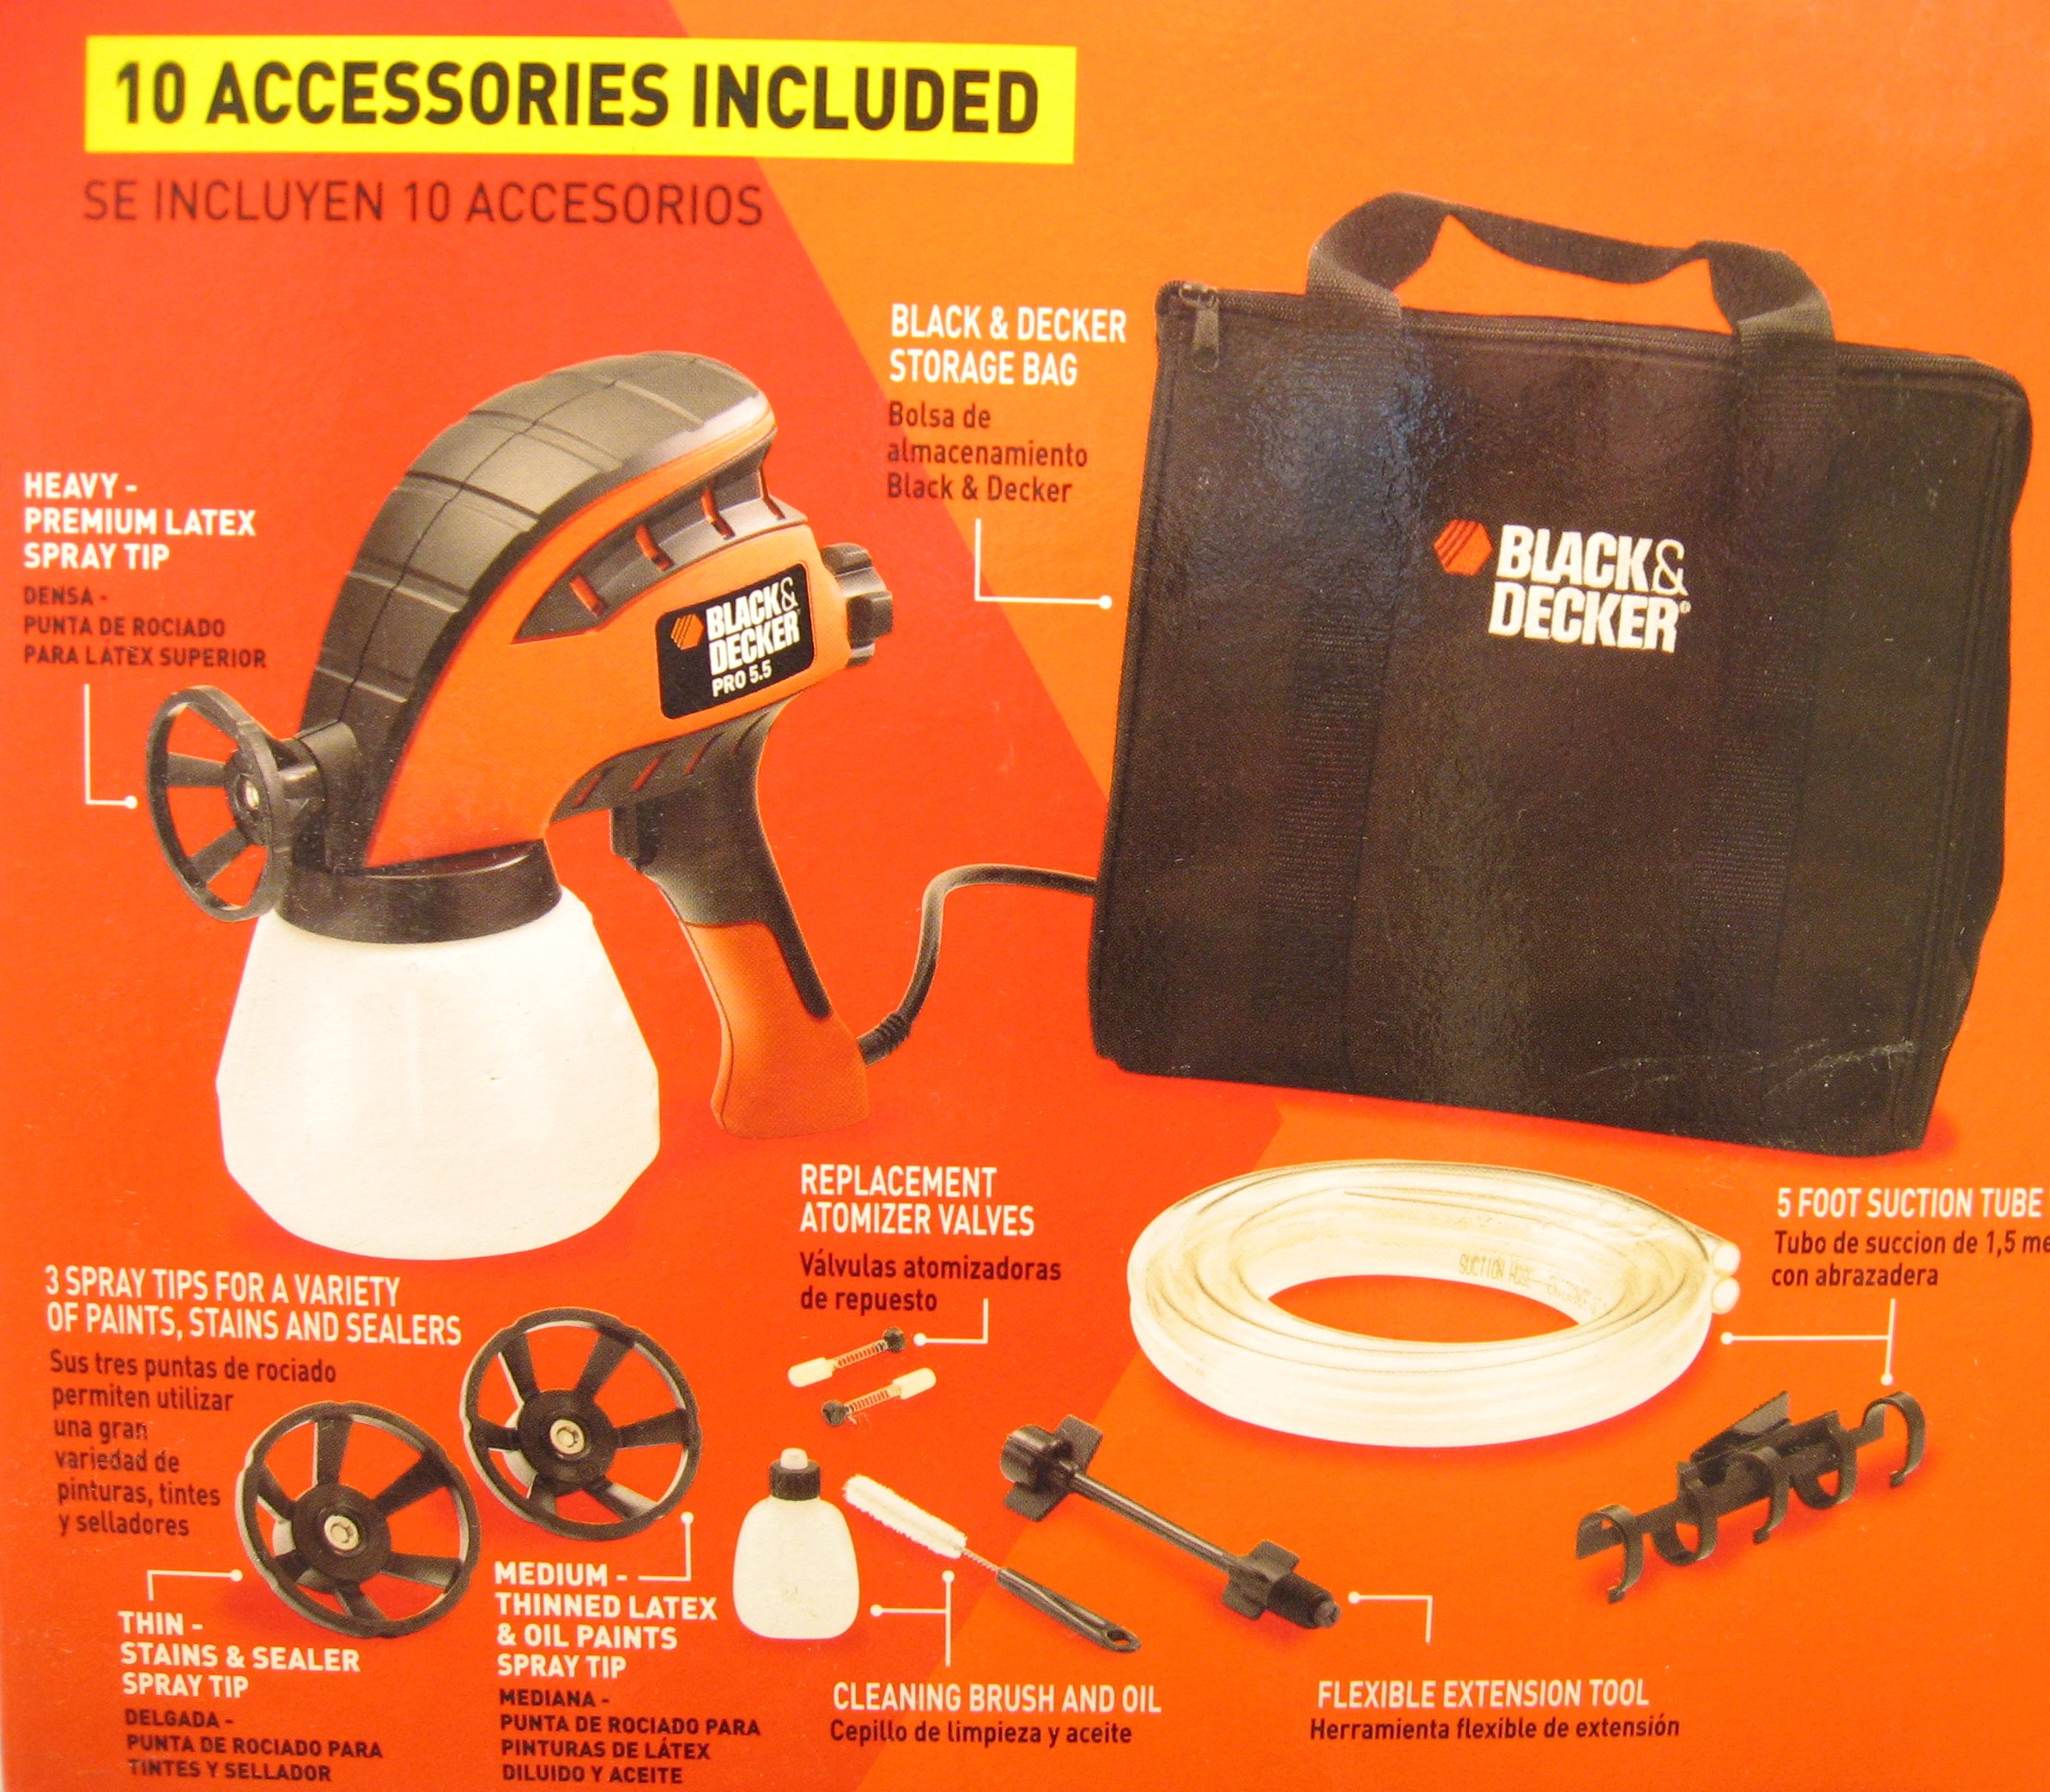 Black & Decker Pro 5.5 Paint Sprayer Back of Box